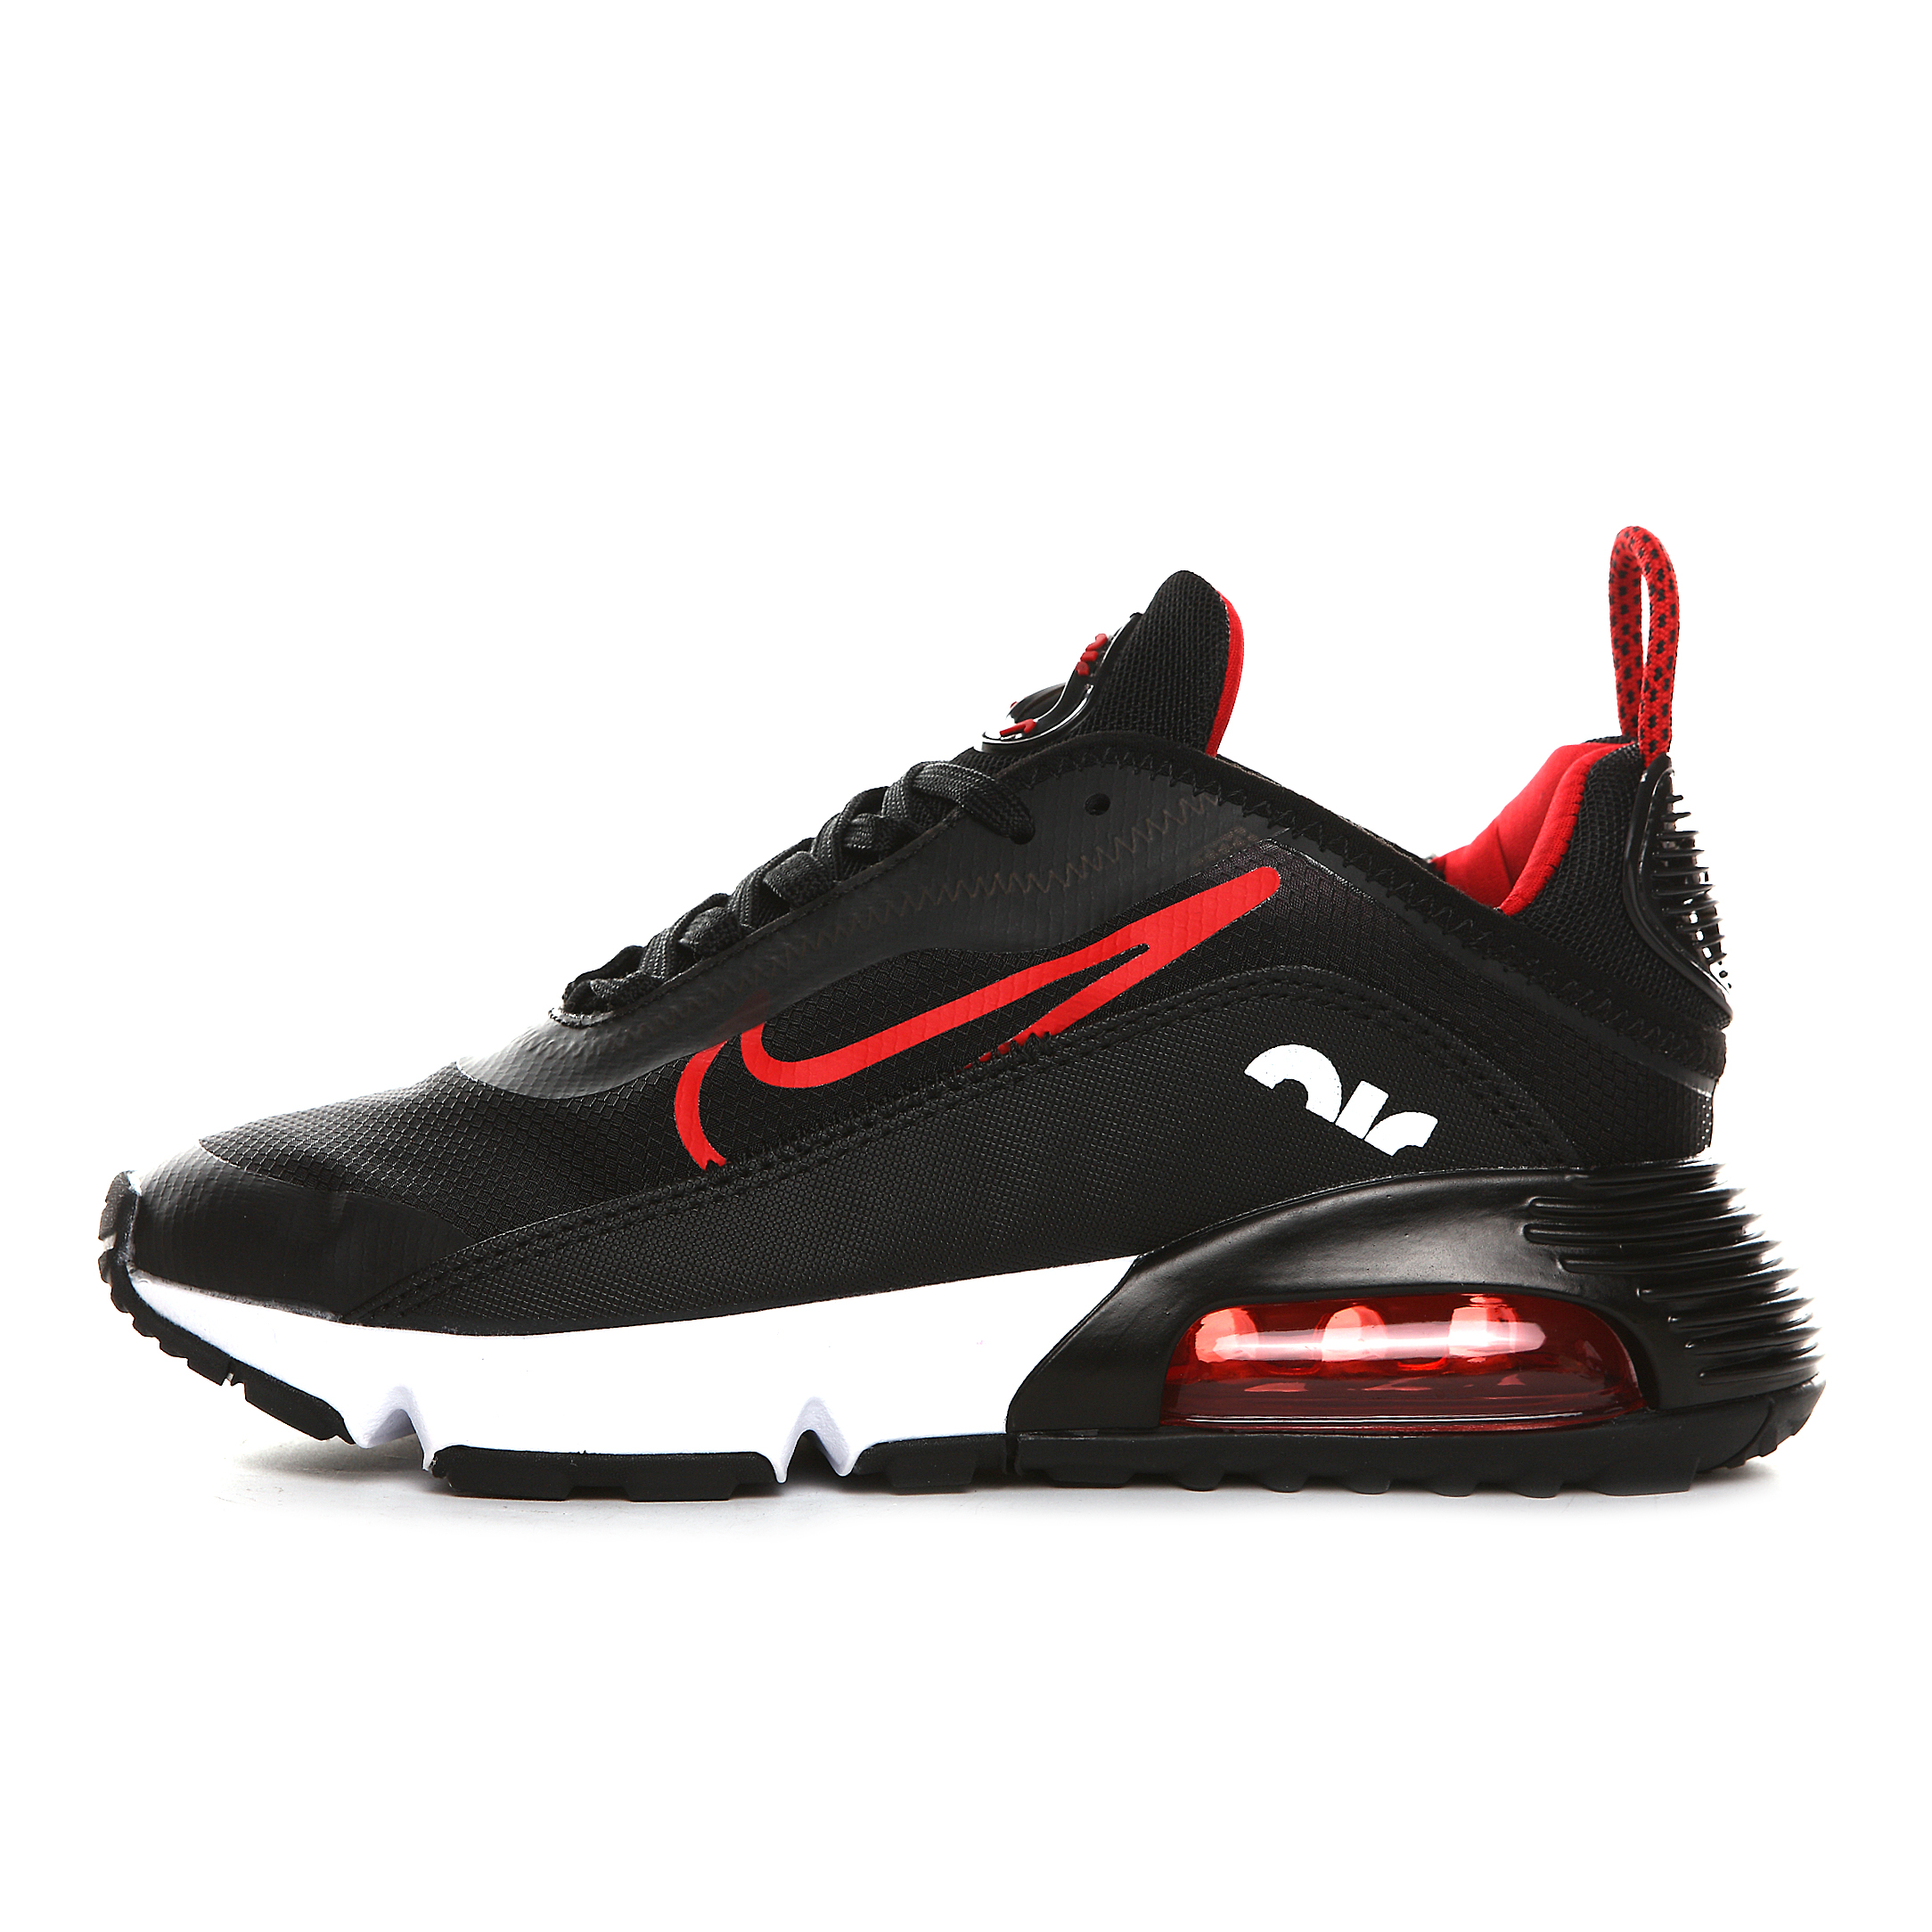 Men's Running weapon Air Max 90 Shoes 059